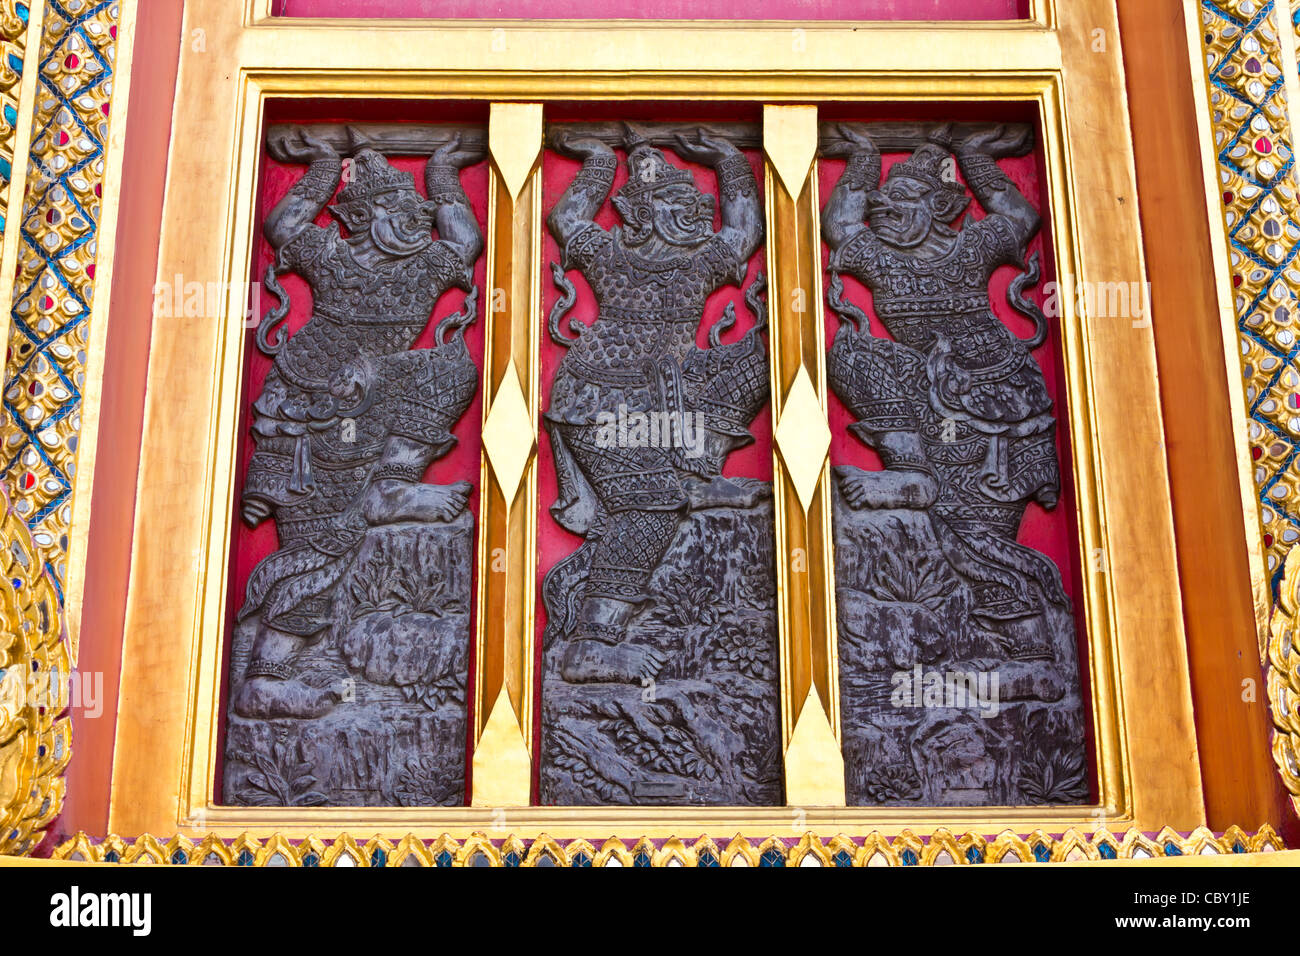 Native Thai style wood carving on window in temple, bangkok Thailand. - Stock Image